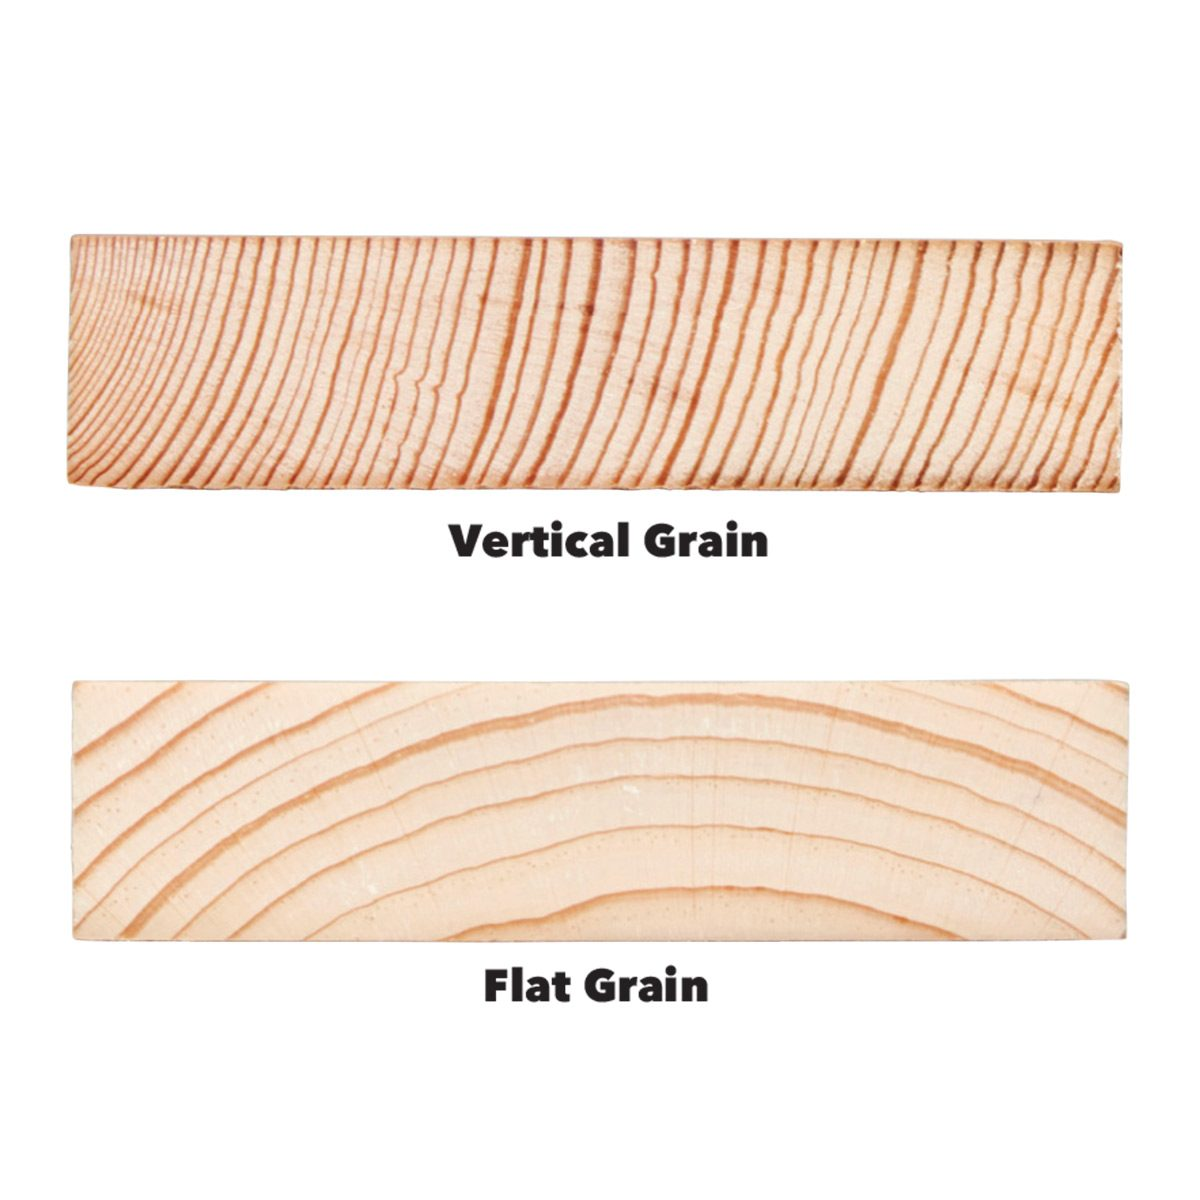 Vertical and flat grain boards